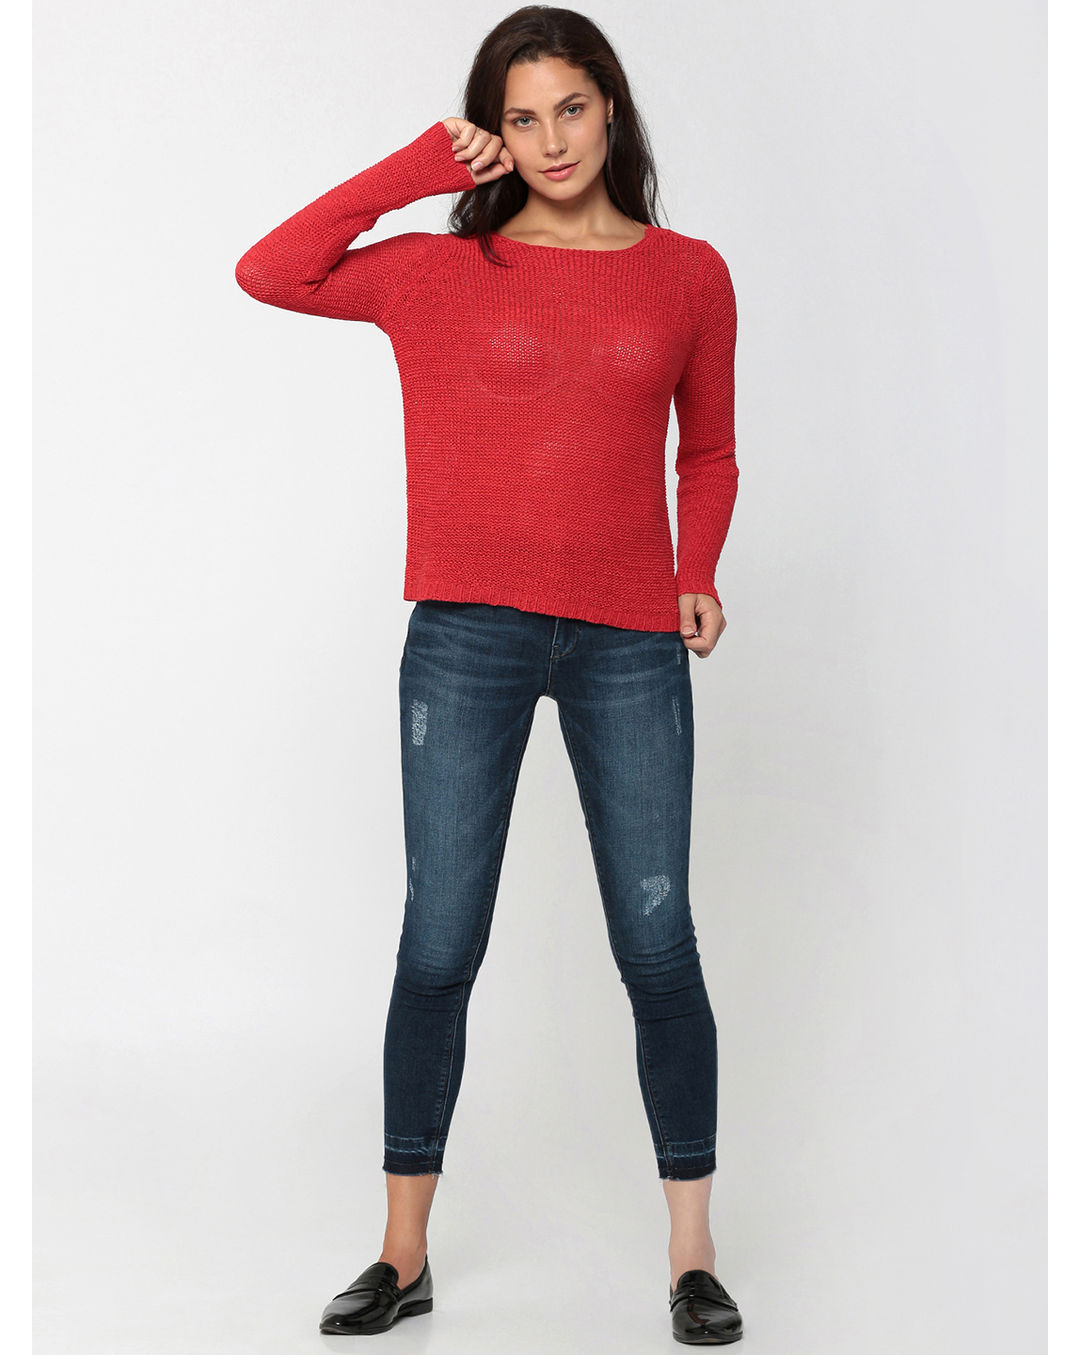 buy popular 482d6 7a6dc Buy ONLY Red Criss Cross Back Knit Pullover Online | Vero Moda